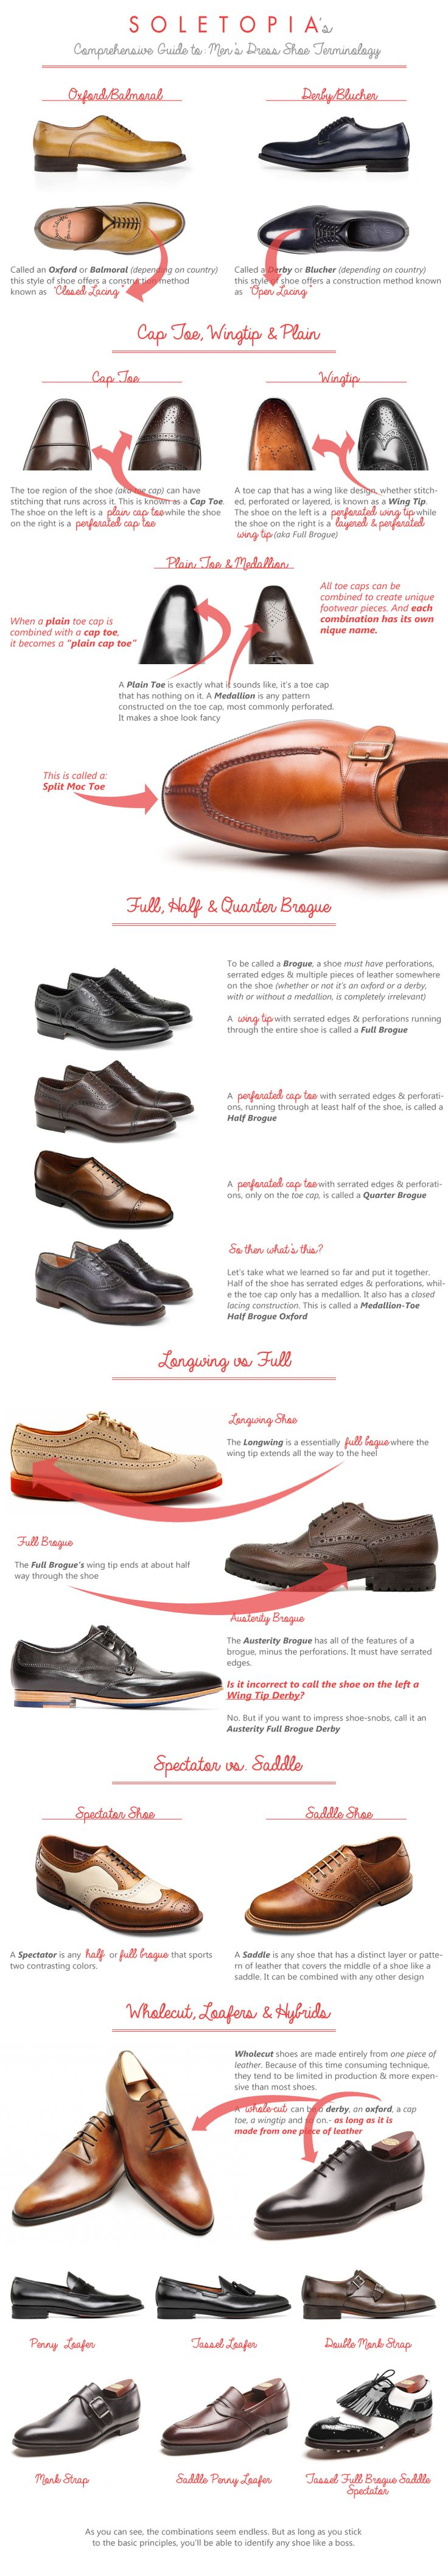 ESSENTIALS FOR THE GENTLEMEN - shoes#manresume